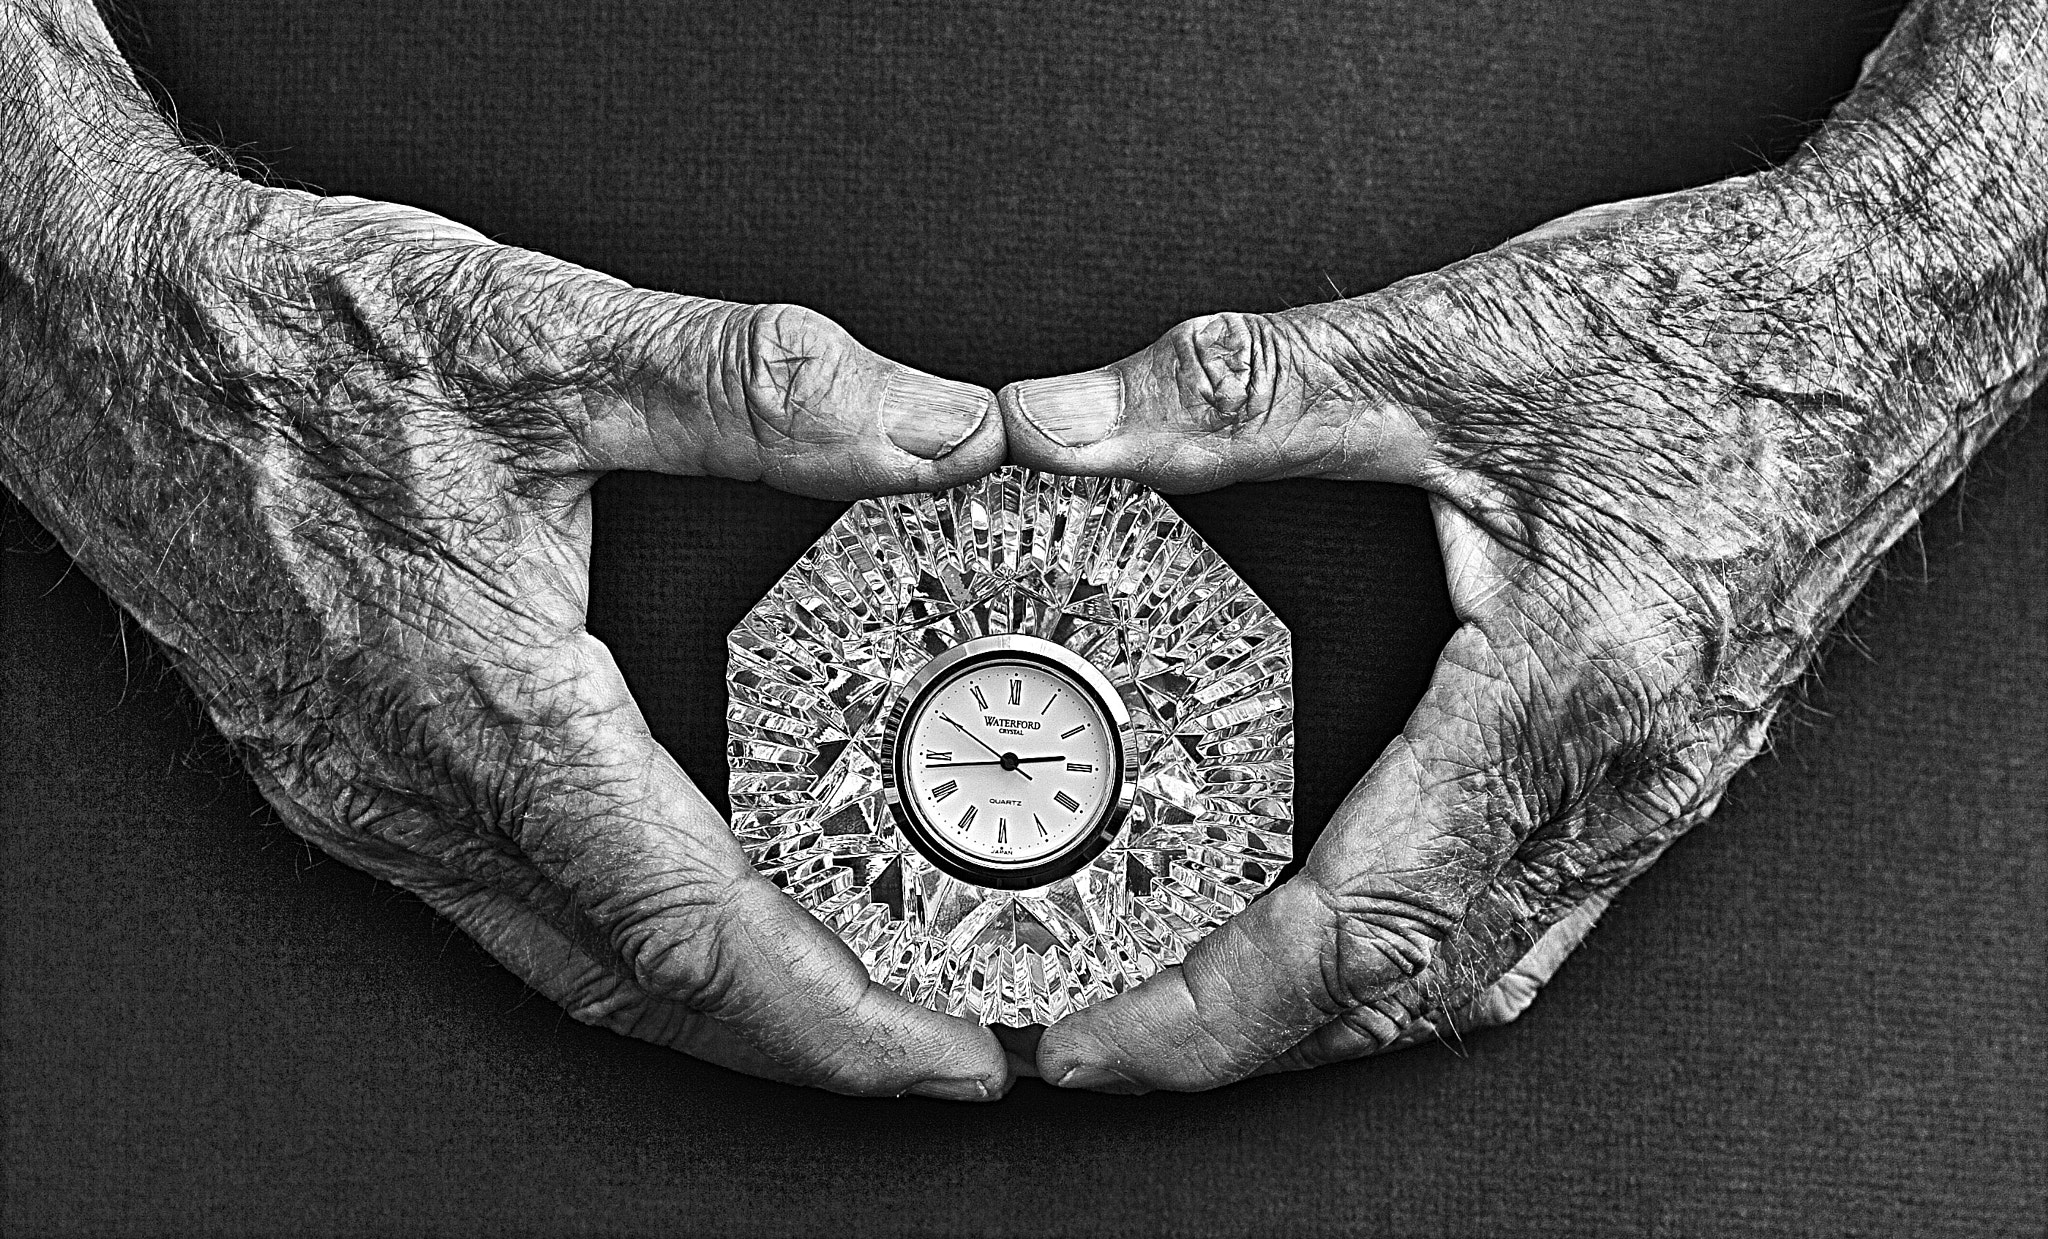 Photograph The Hands of Time by Margaret Morgan on 500px